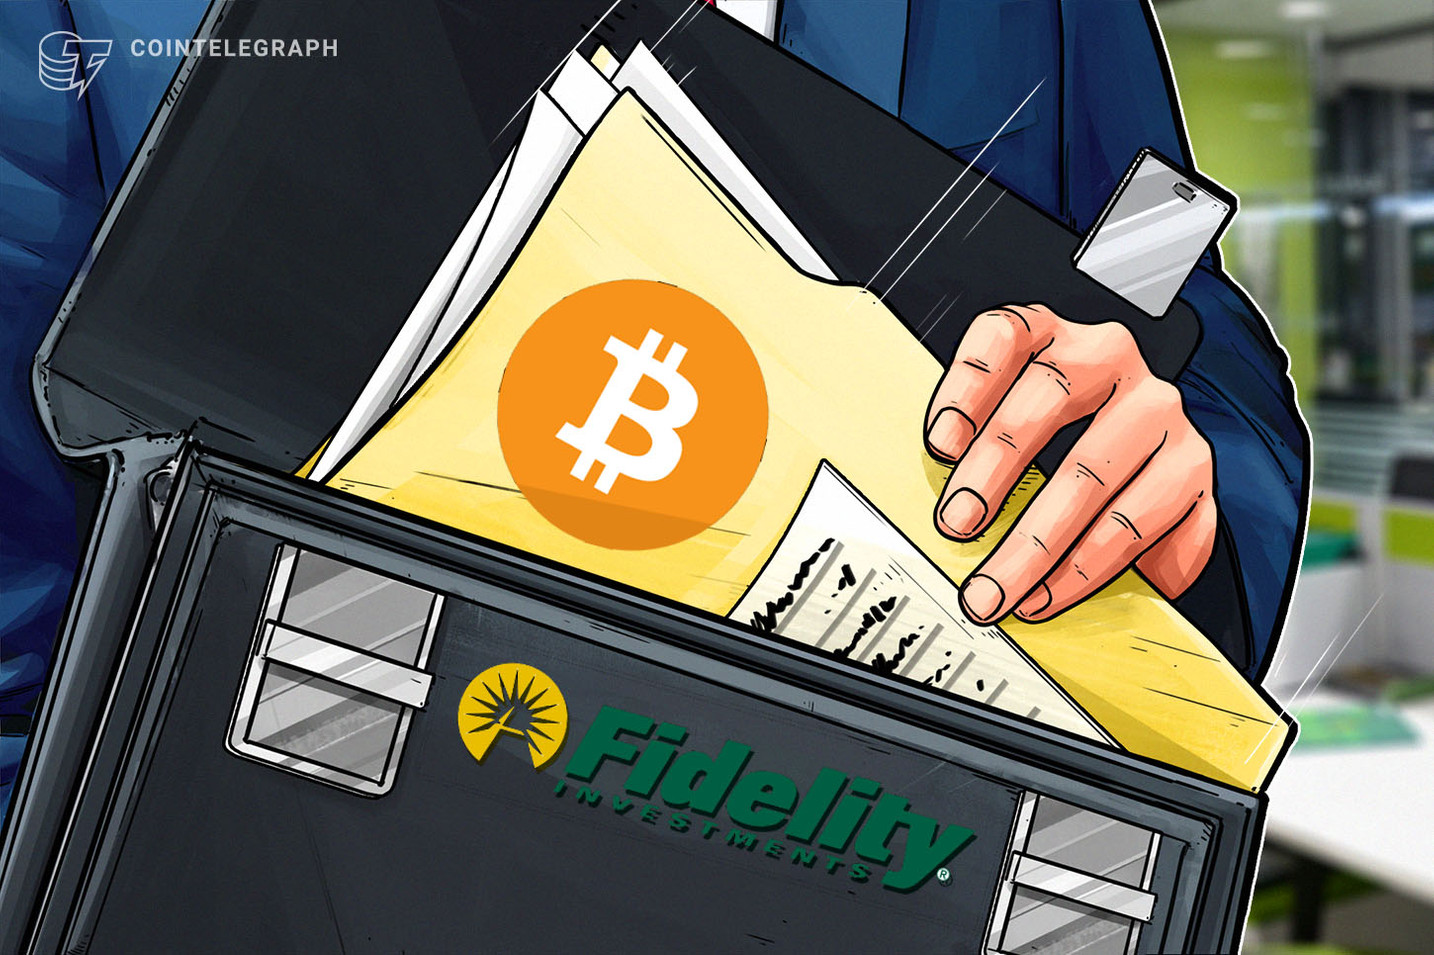 Report: Fidelity Sets March Launch Date for Bitcoin Custody Service